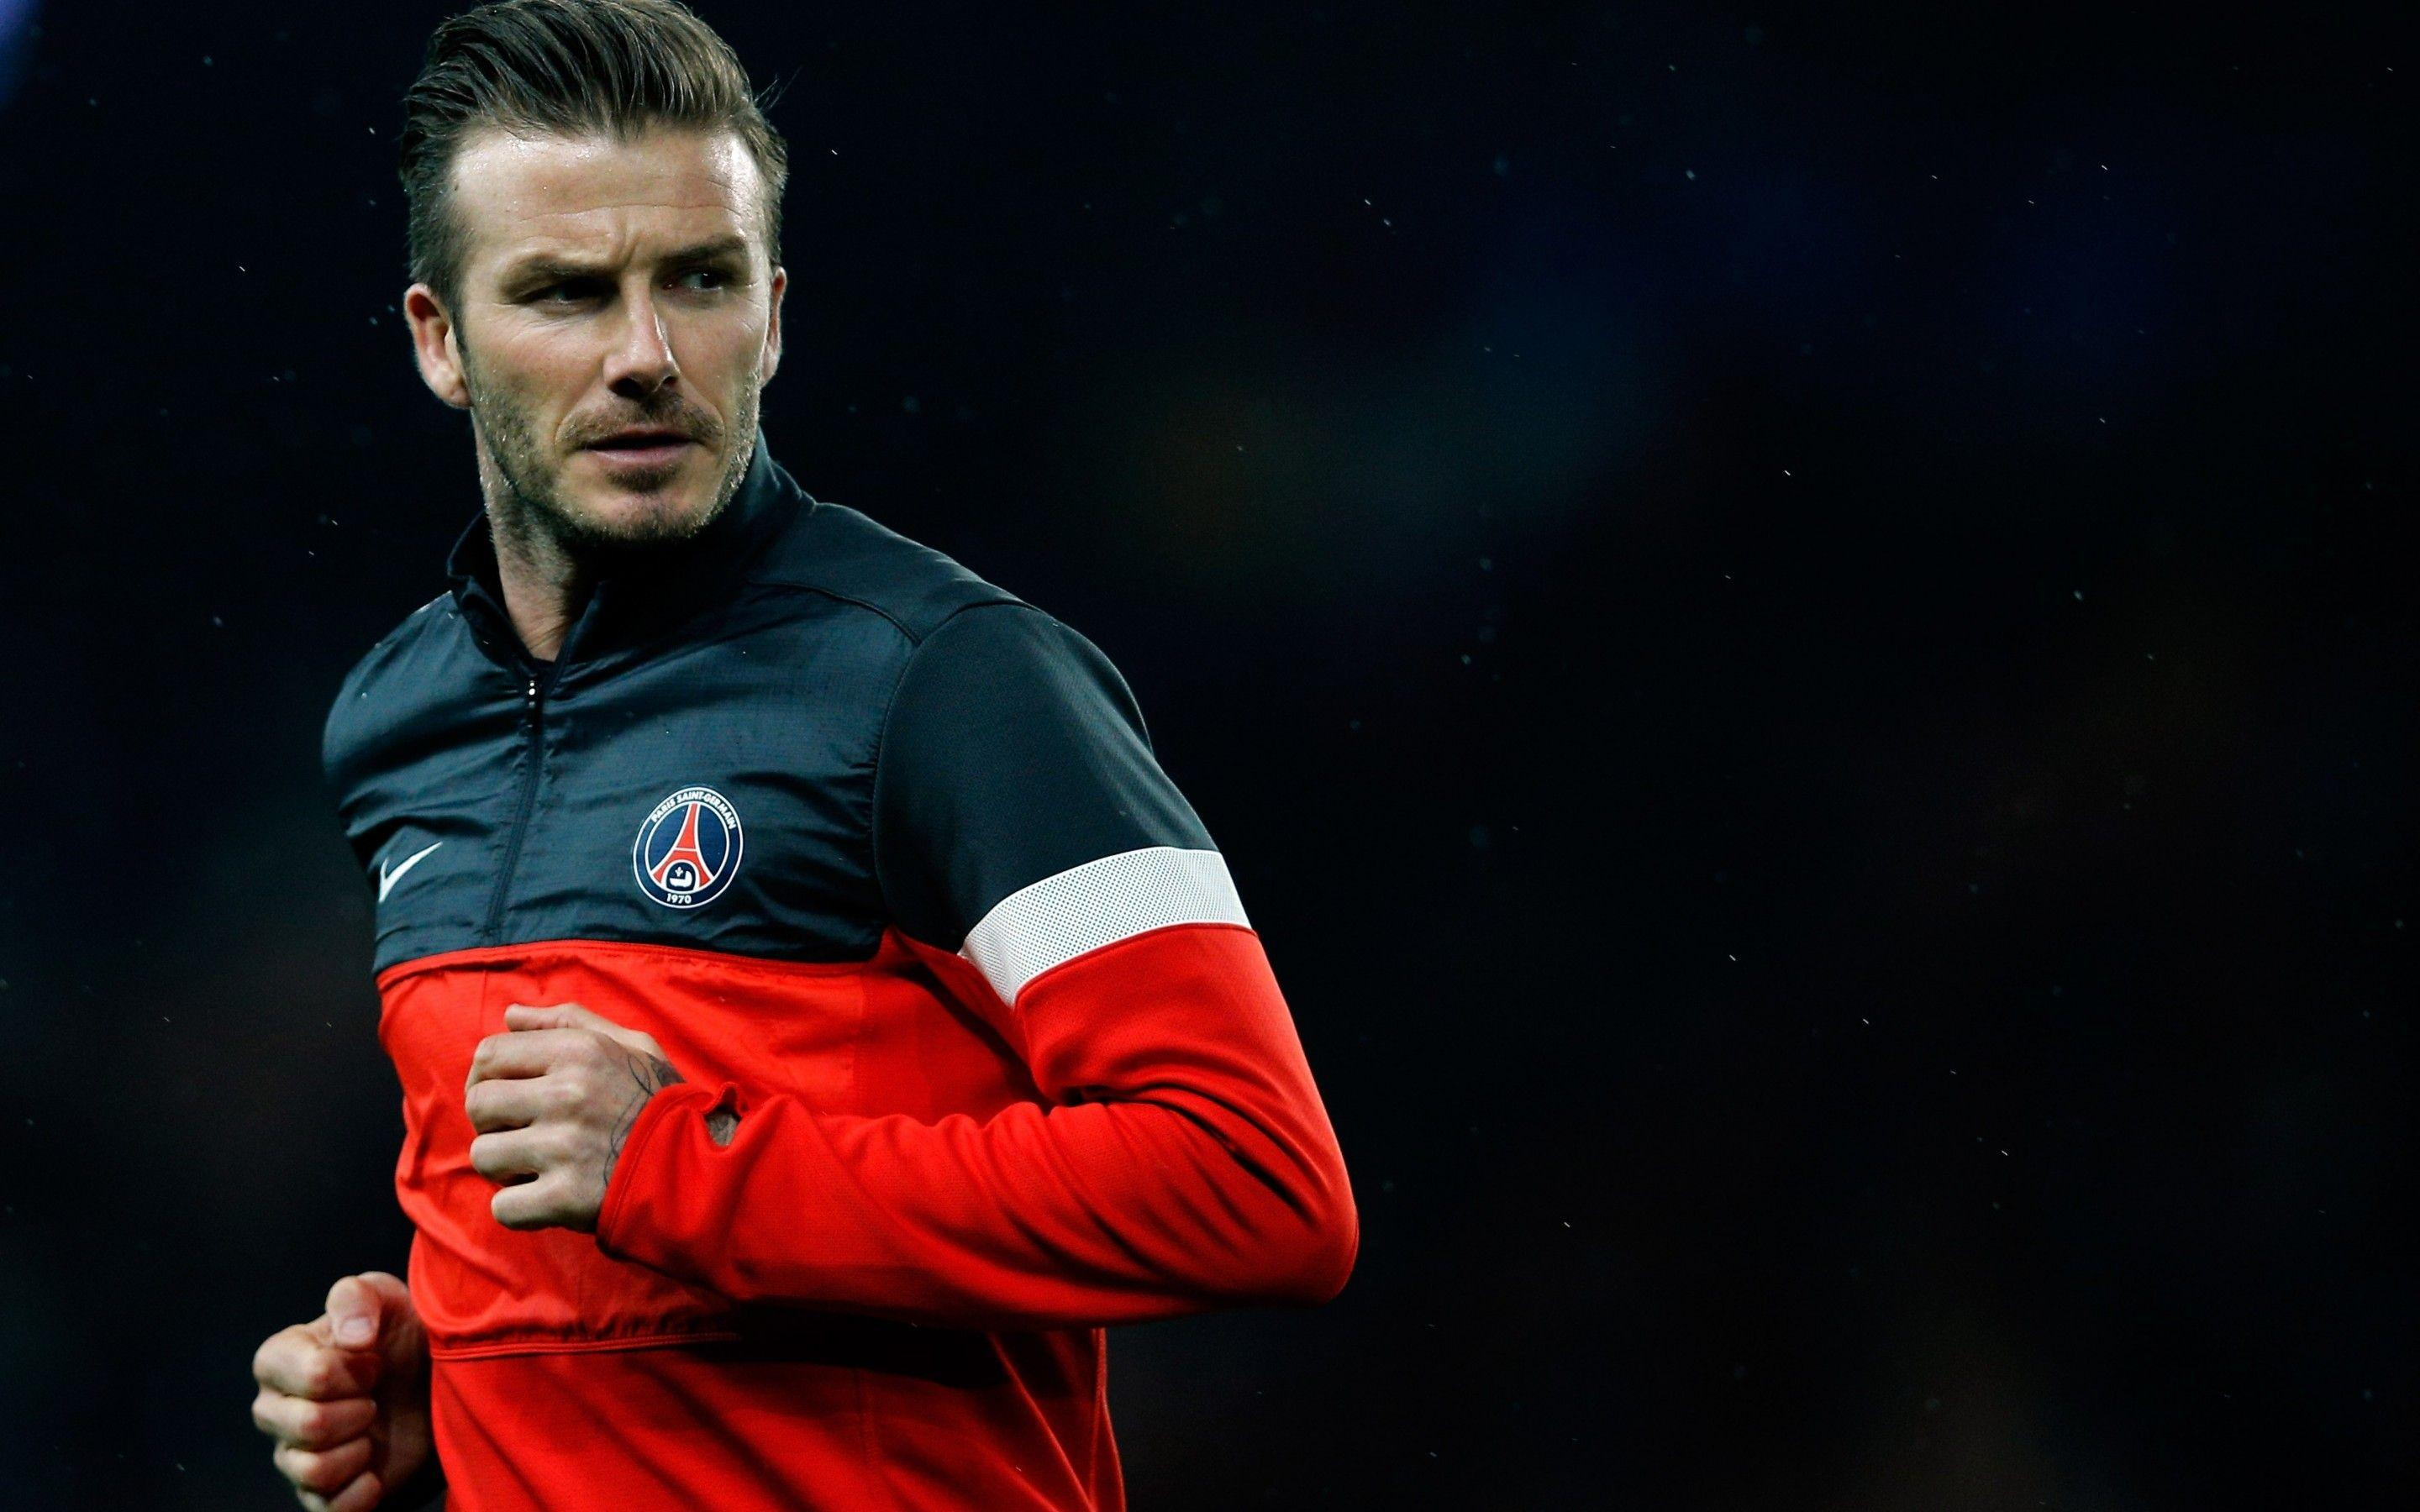 38 David Beckham HD Wallpapers | Backgrounds - Wallpaper Abyss